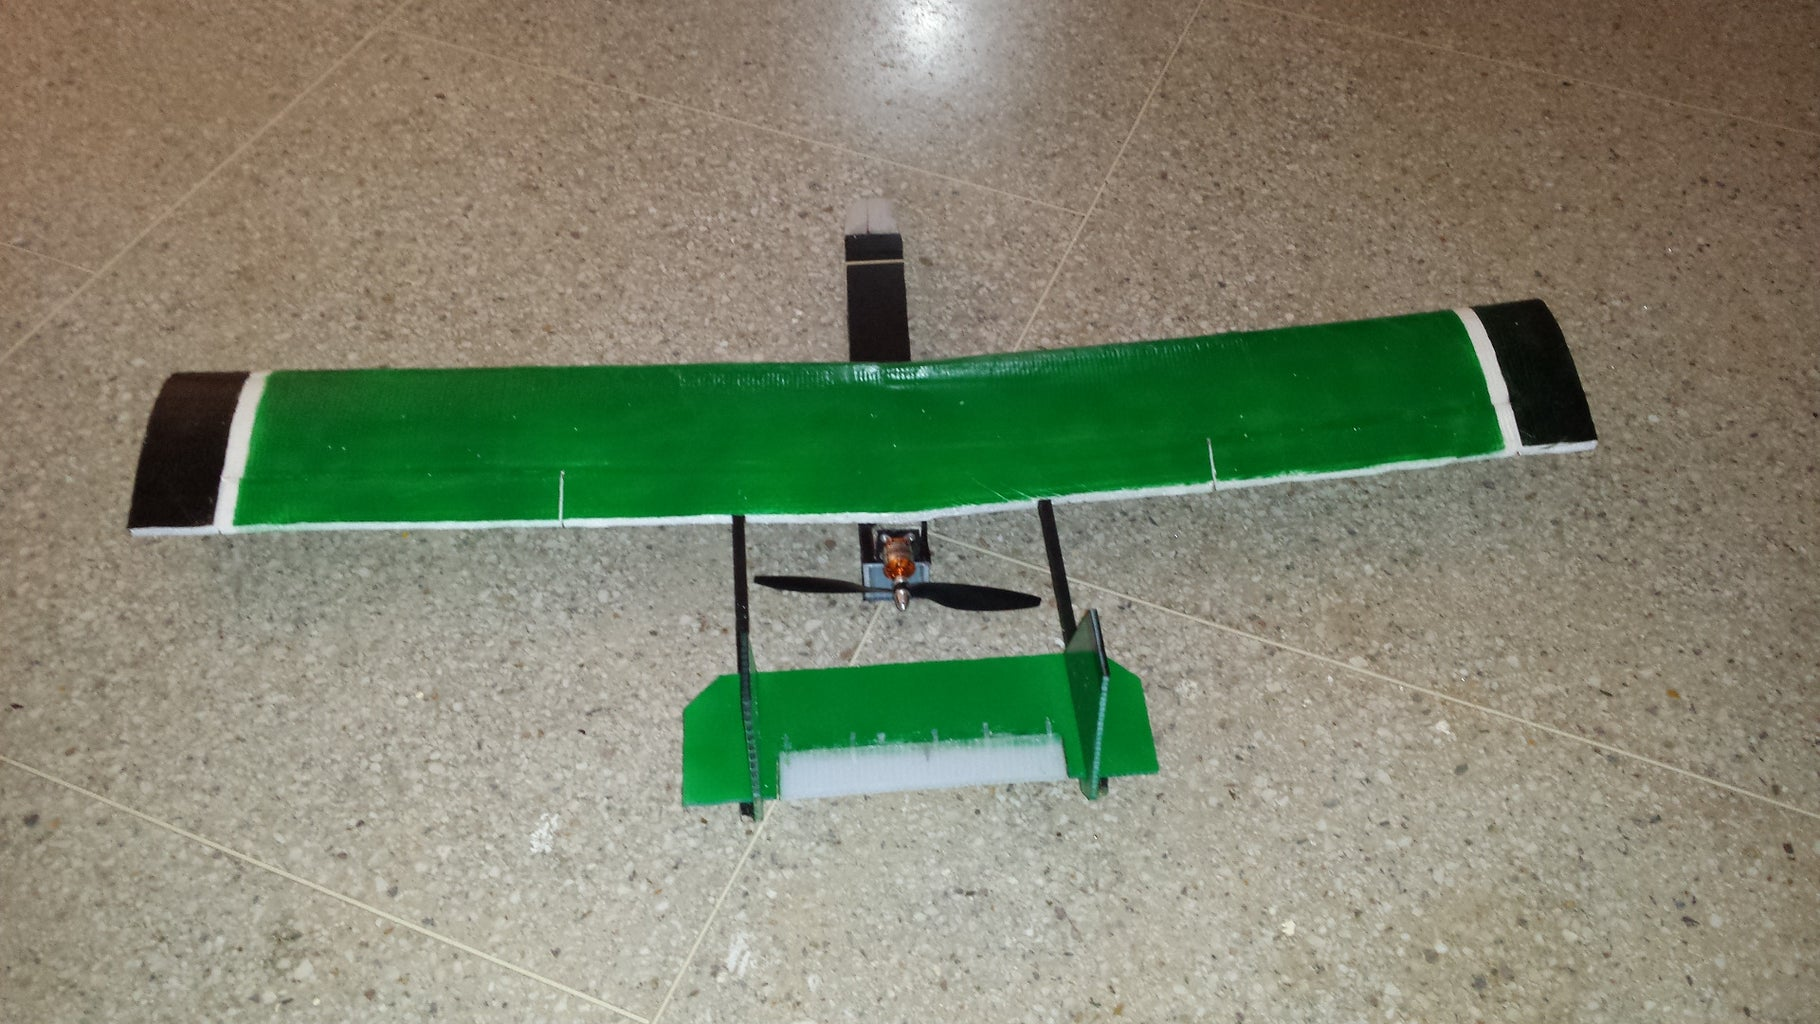 Rc Twin Boom Plane ! Complet Build ! the Best Plane for Fpv and Aerial Video !!